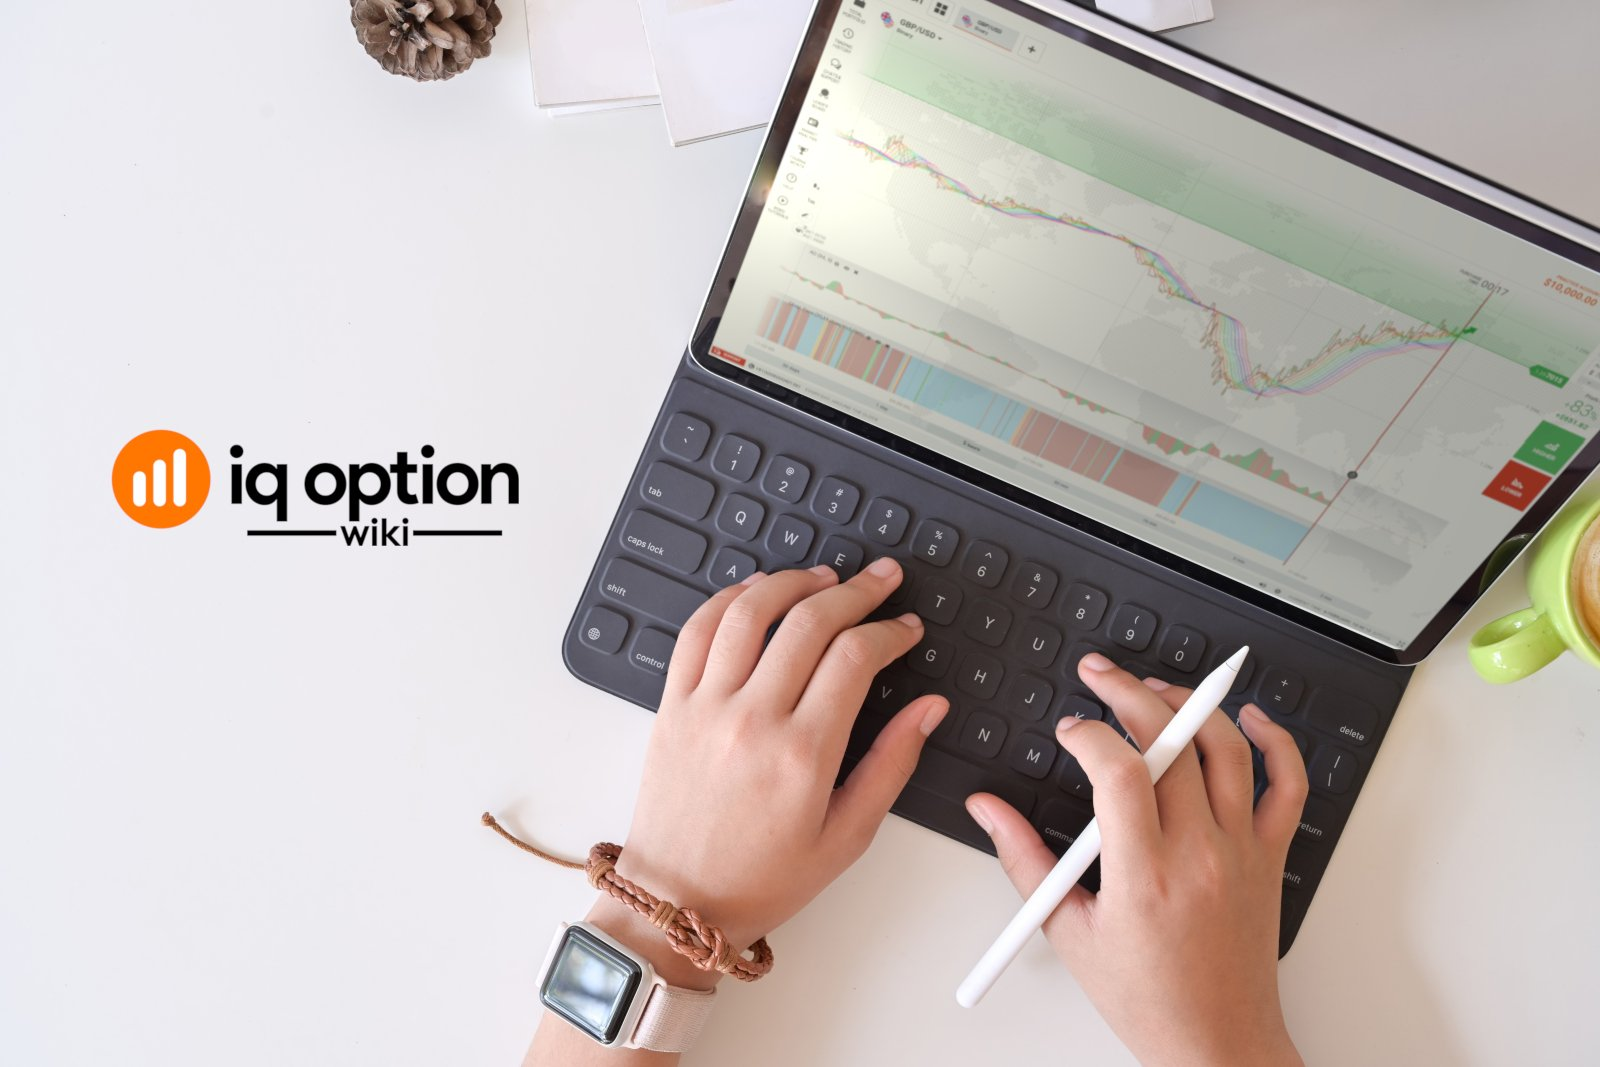 iq option platform on tablet